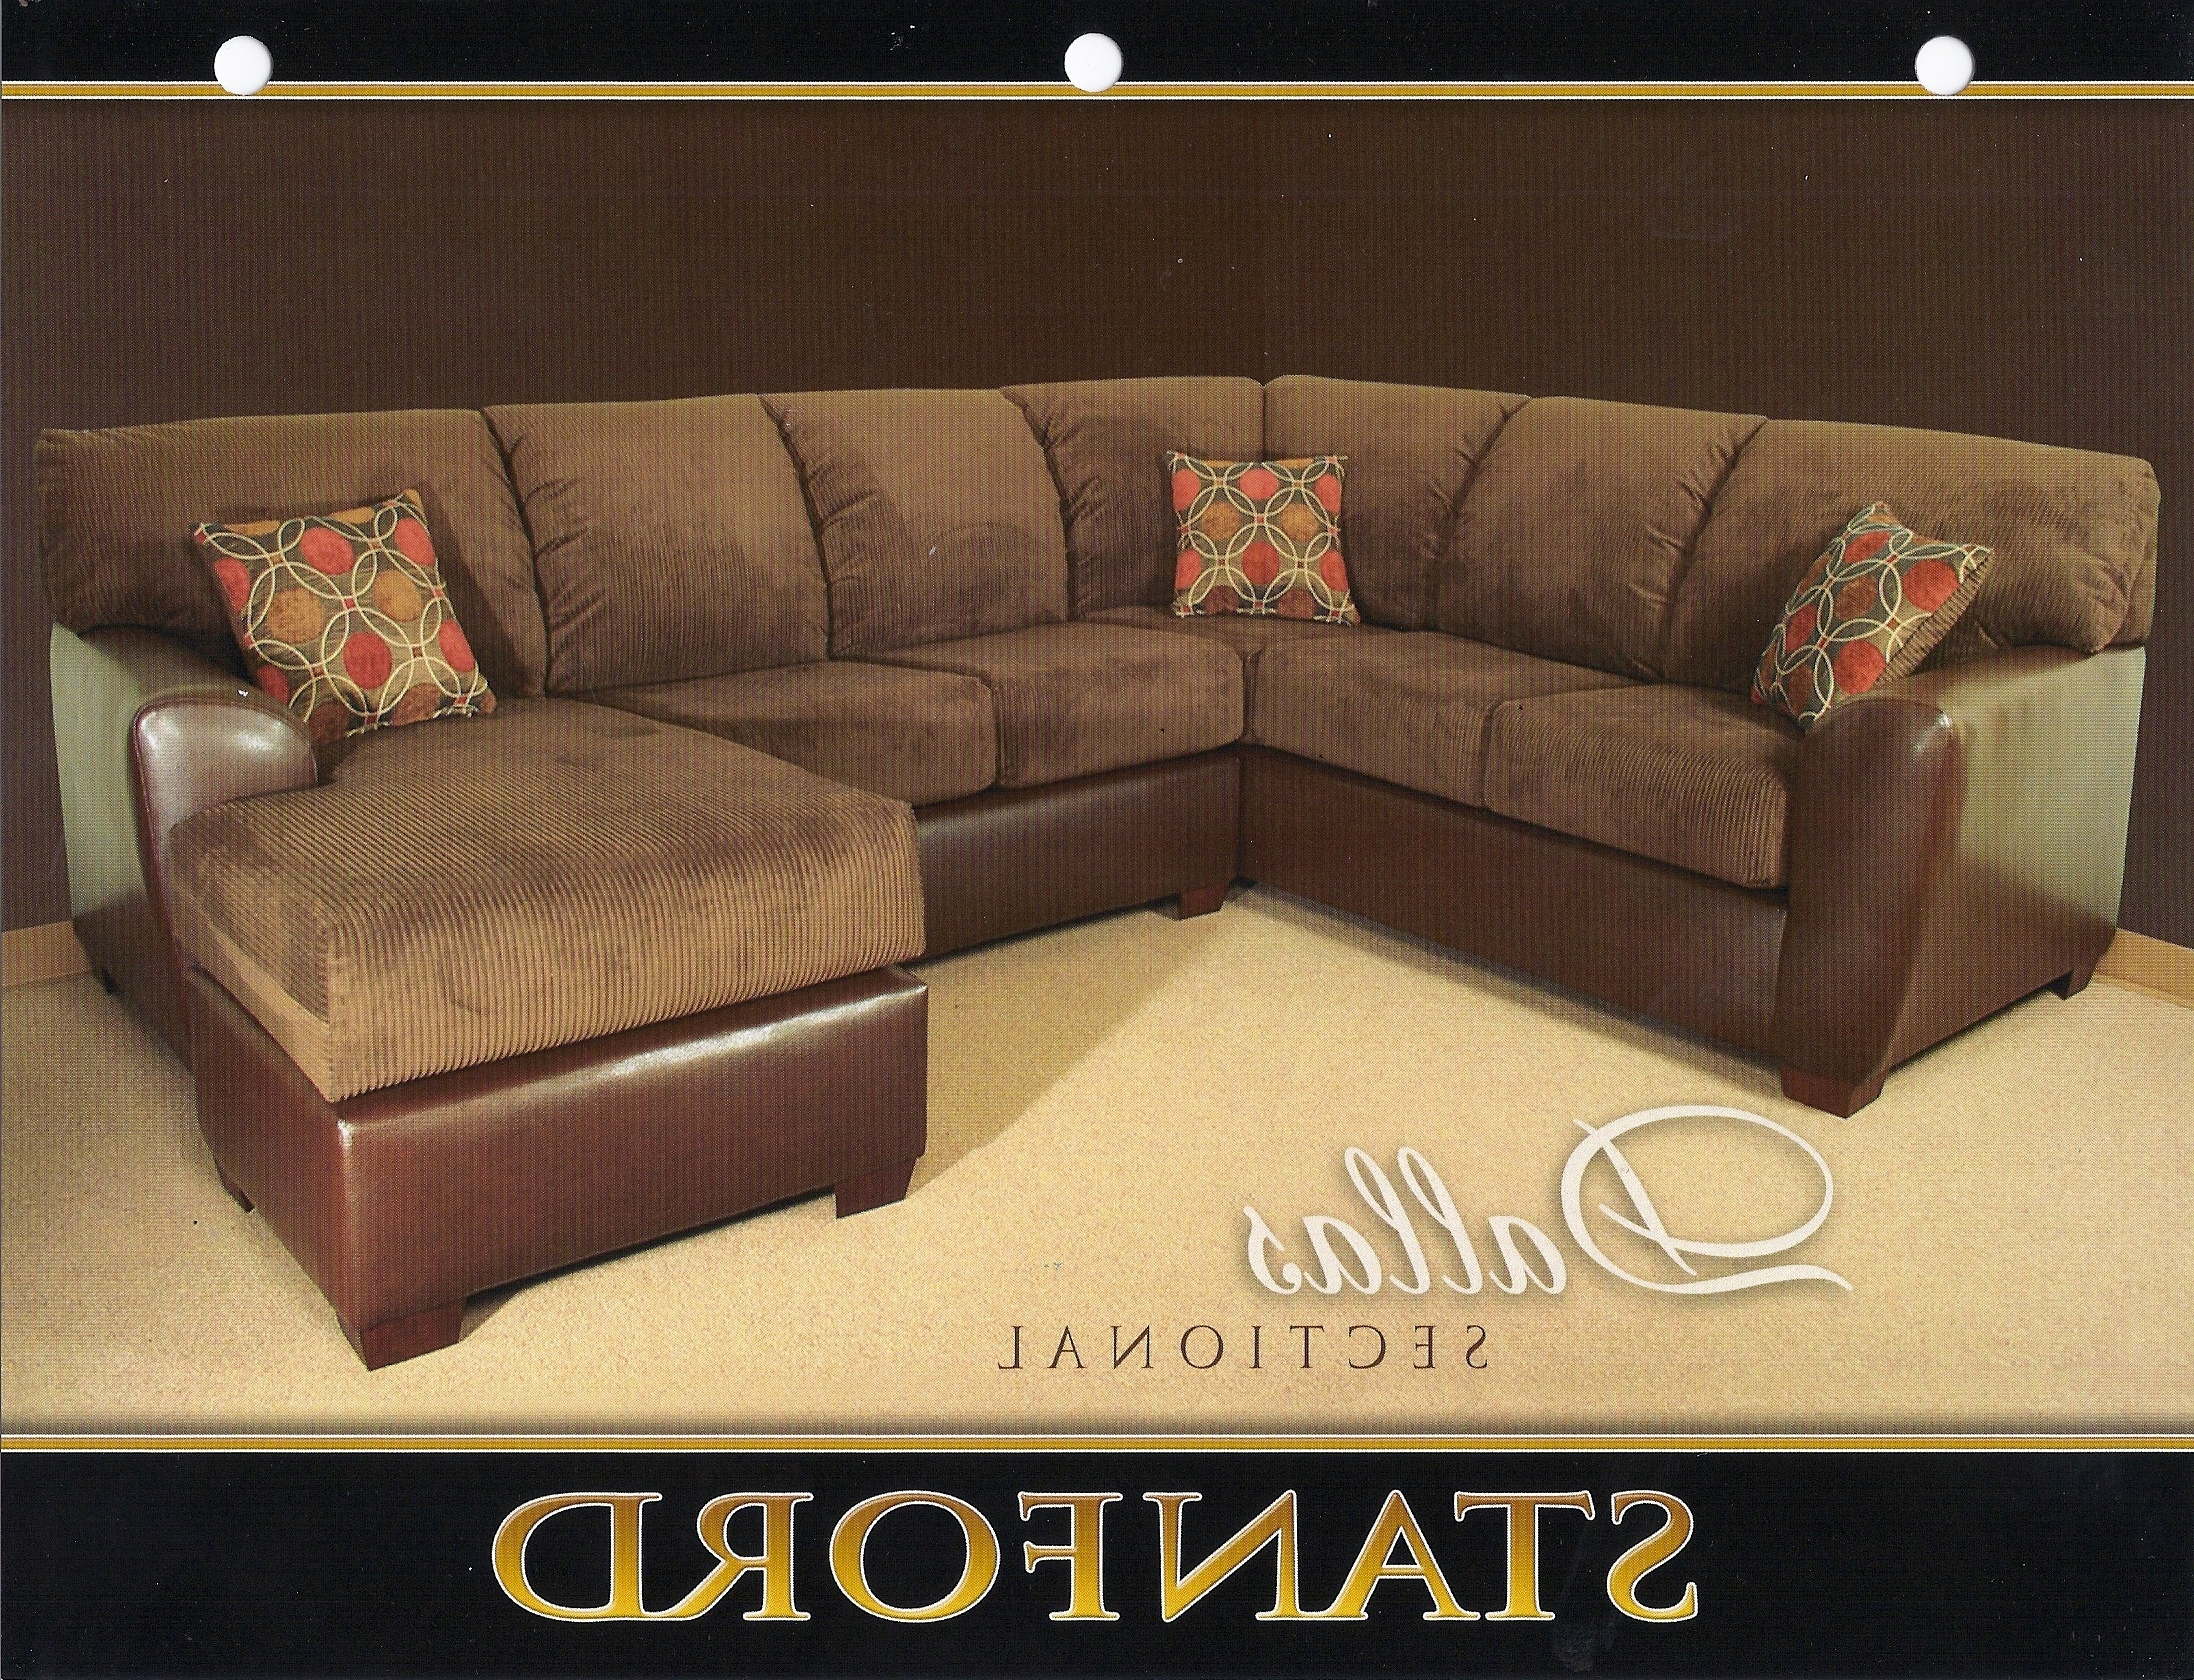 Fashionable Sectional Sofa Design: Comfort Sectional Sofas Dallas Dallas Pertaining To Dallas Texas Sectional Sofas (Gallery 1 of 20)